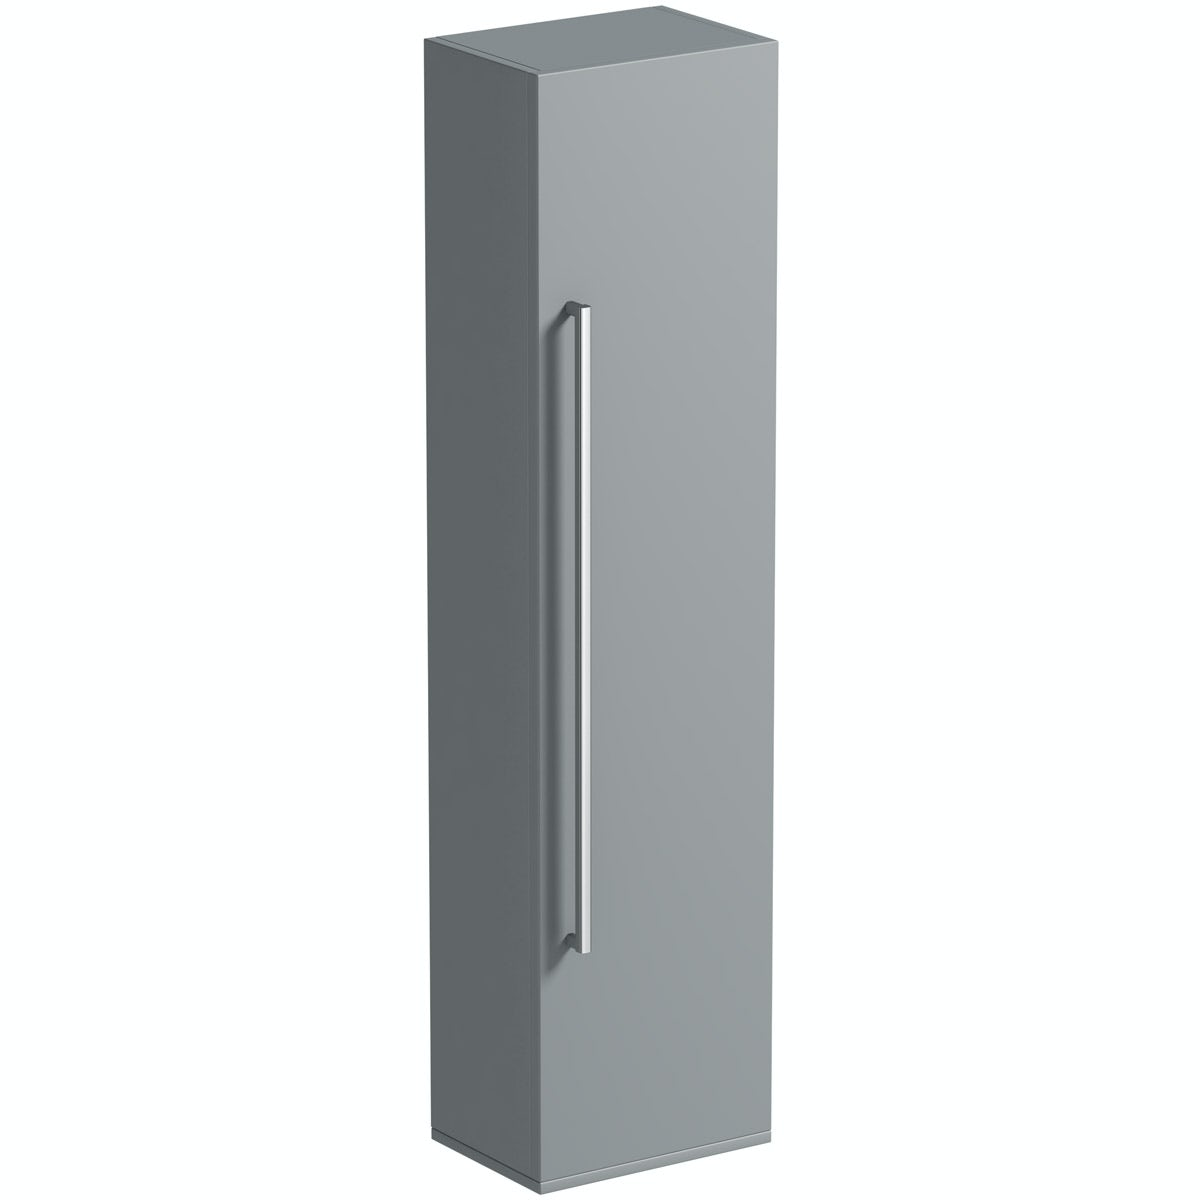 Ordinaire Orchard Derwent Grey Tall Storage Cabinet. Orchard Bathrooms Logo